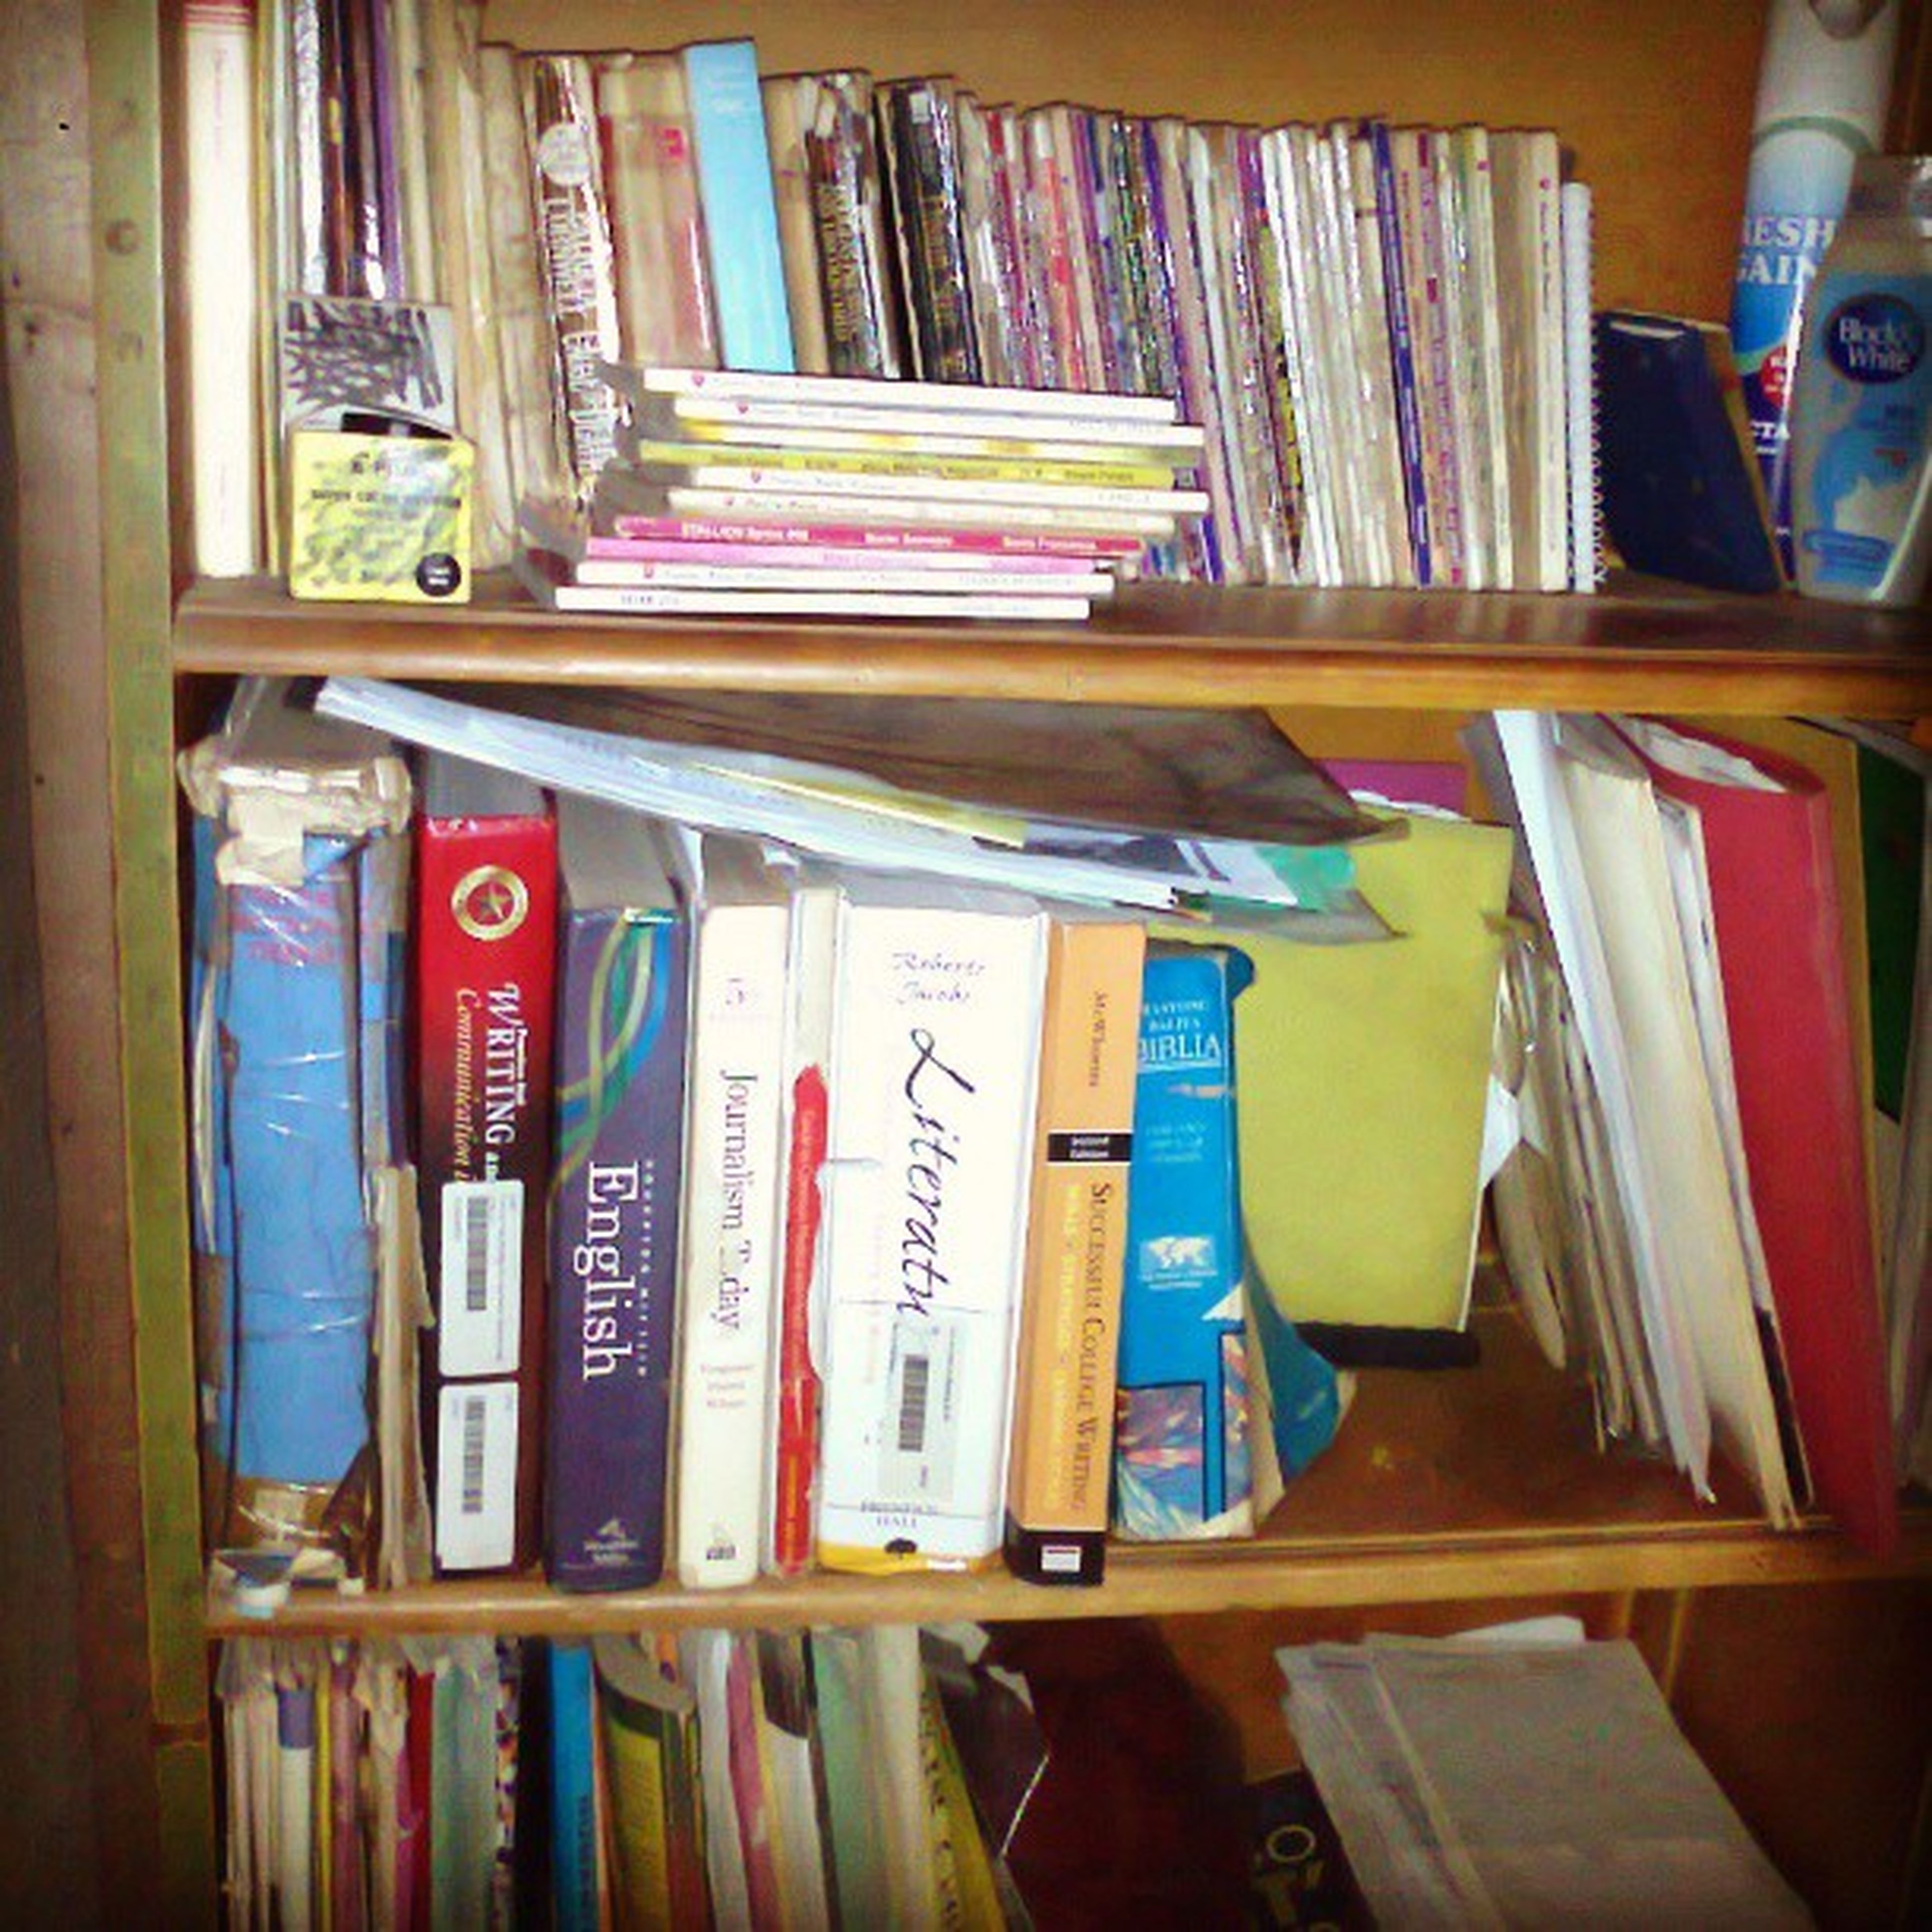 Knowlegde is power. But books are Jenjurikis (sakto ba ang spelling?) Hahahaha. Books are weapons, just like Naruto. Hmm :-) Naruto Books Pocketbooks Precioushearts luannerice lincolnchild douglaspreston mediastudies knowledge hahahaha m2m collection